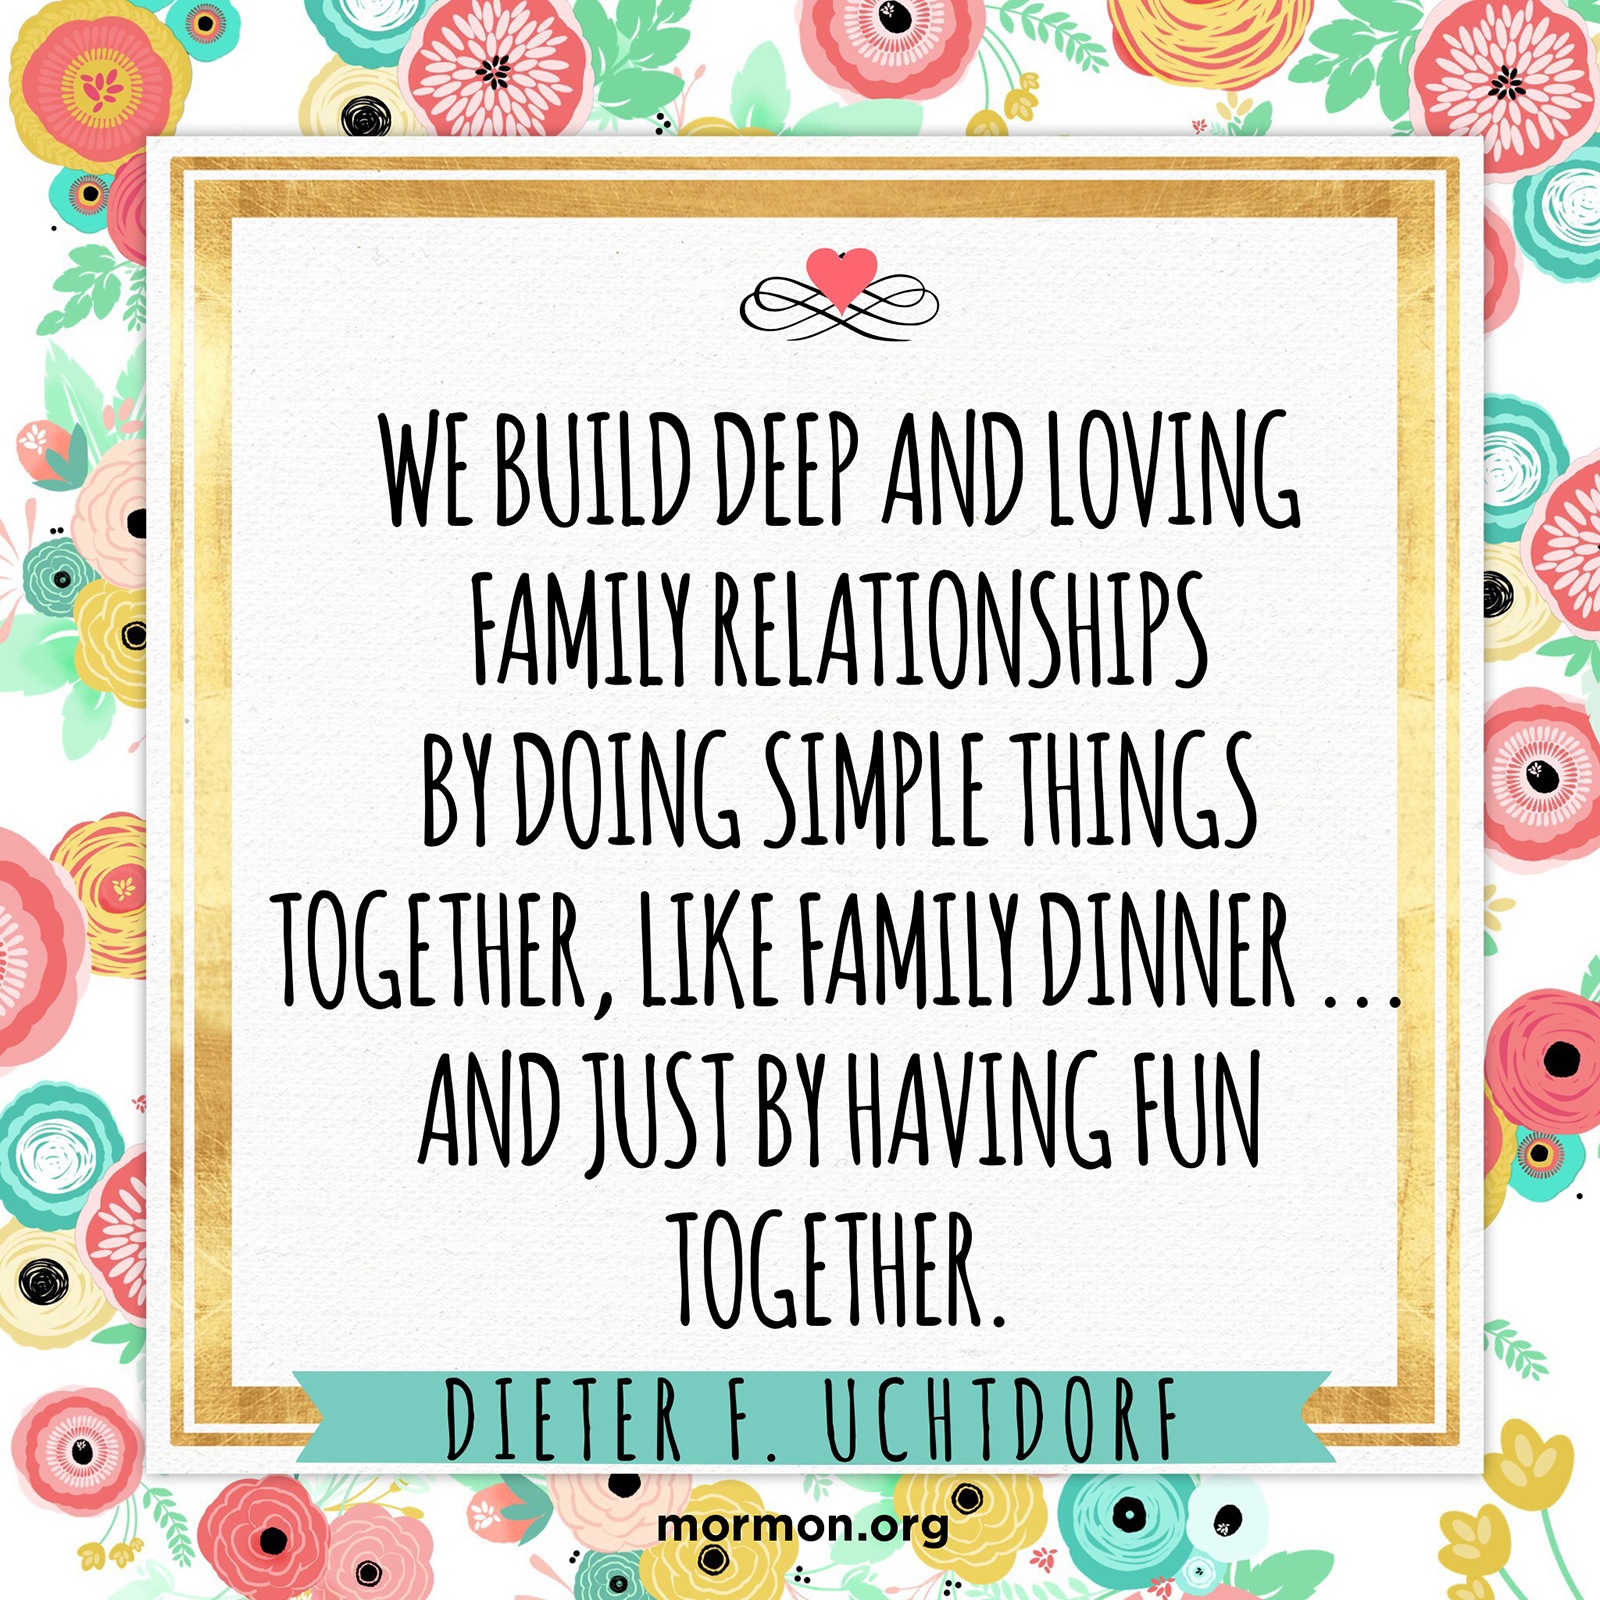 About Family Relationship Quotes: Building Deep And Loving Relationships